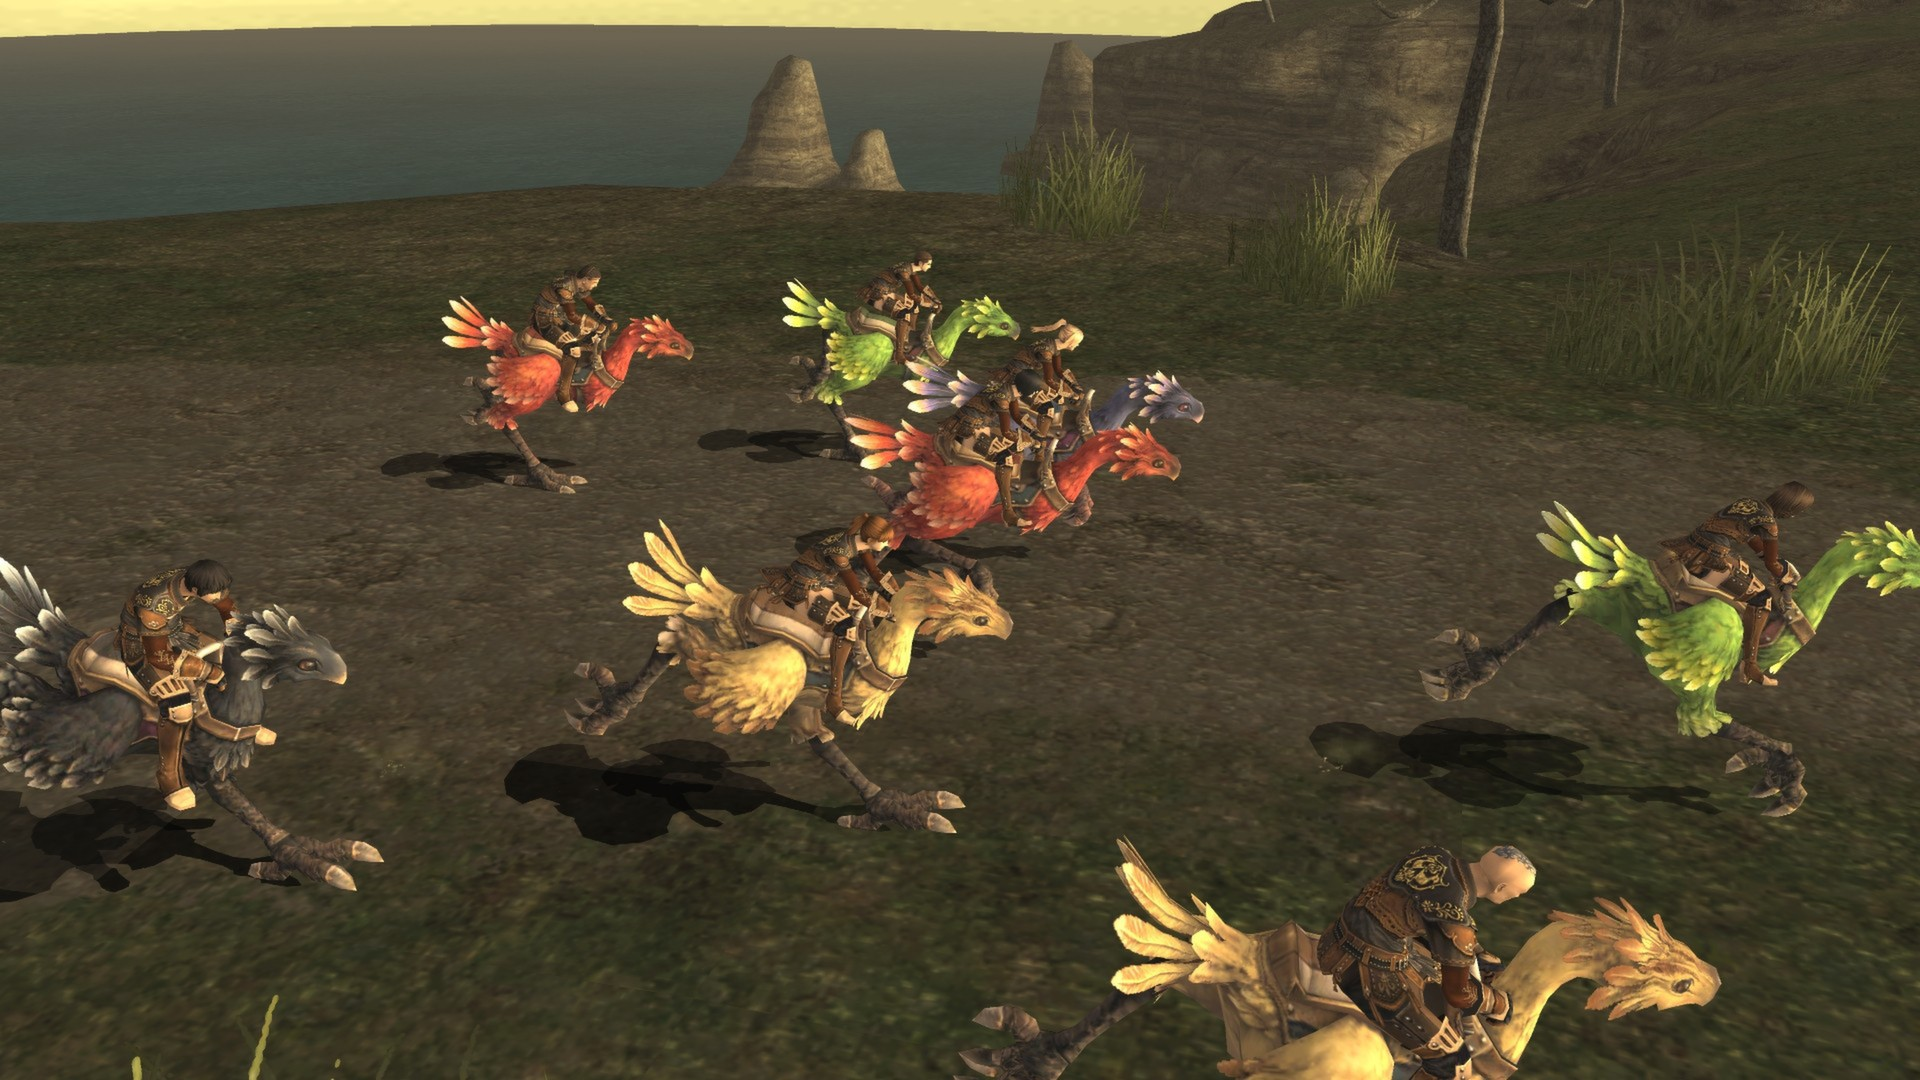 Square Enix addresses possibility of offline version of Final Fantasy XI